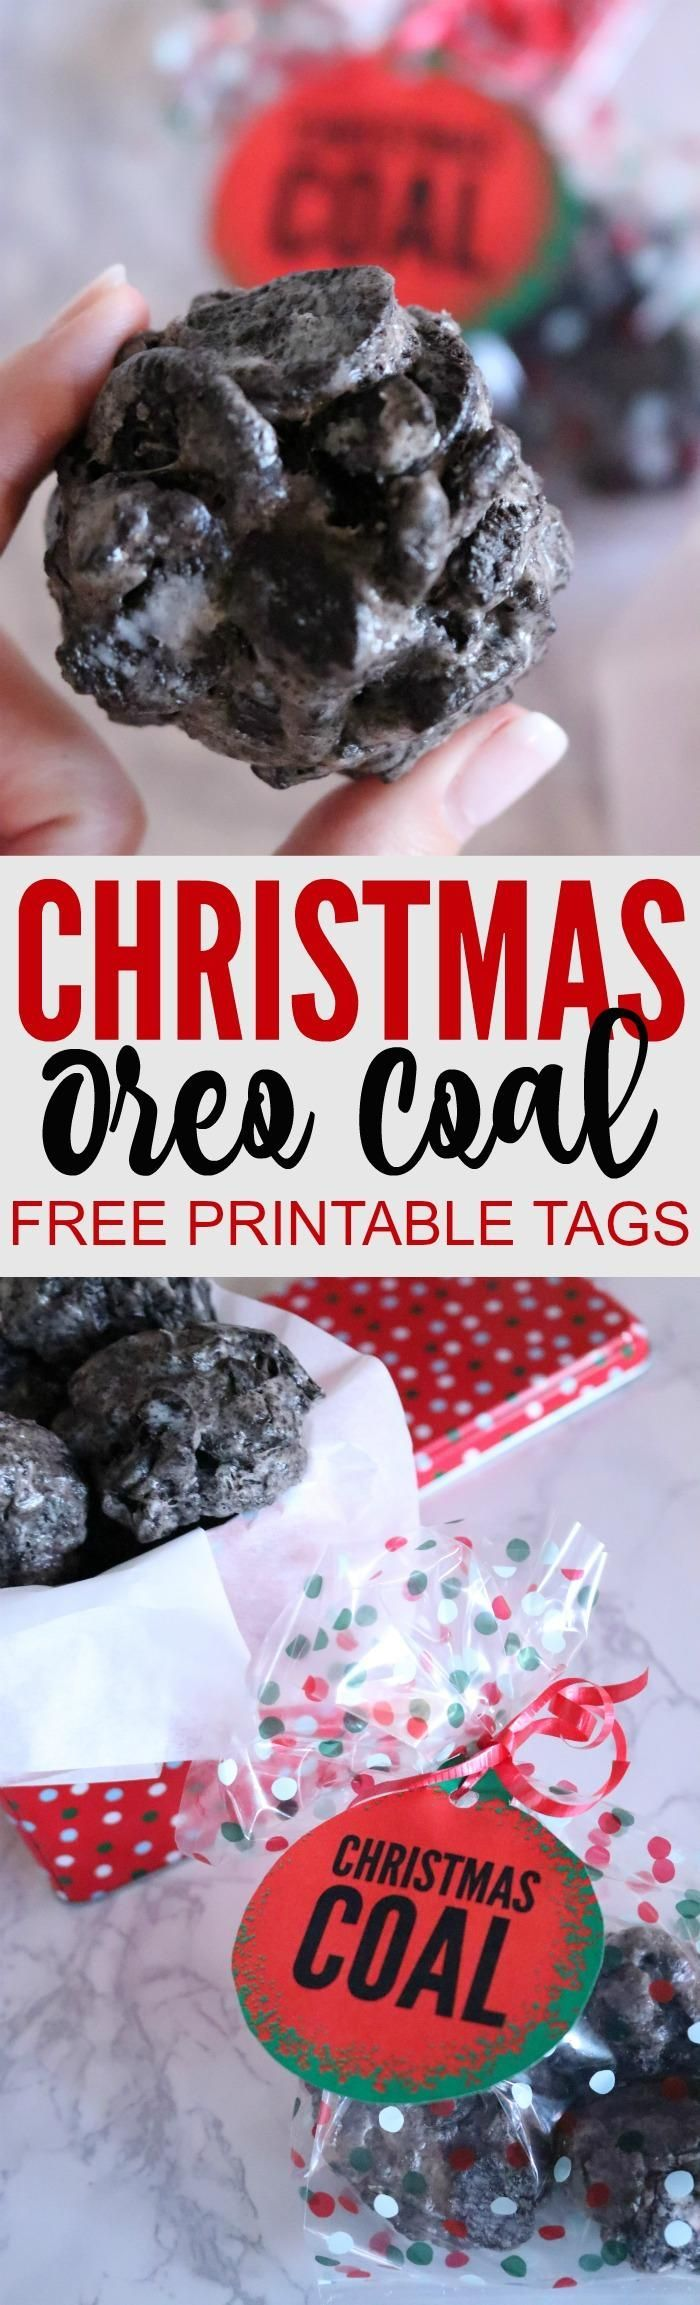 Easy Oreo Christmas Coal Recipe for Friends and Neighbors! A super cute treat and dessert idea to give away or share at the office or a holiday party!